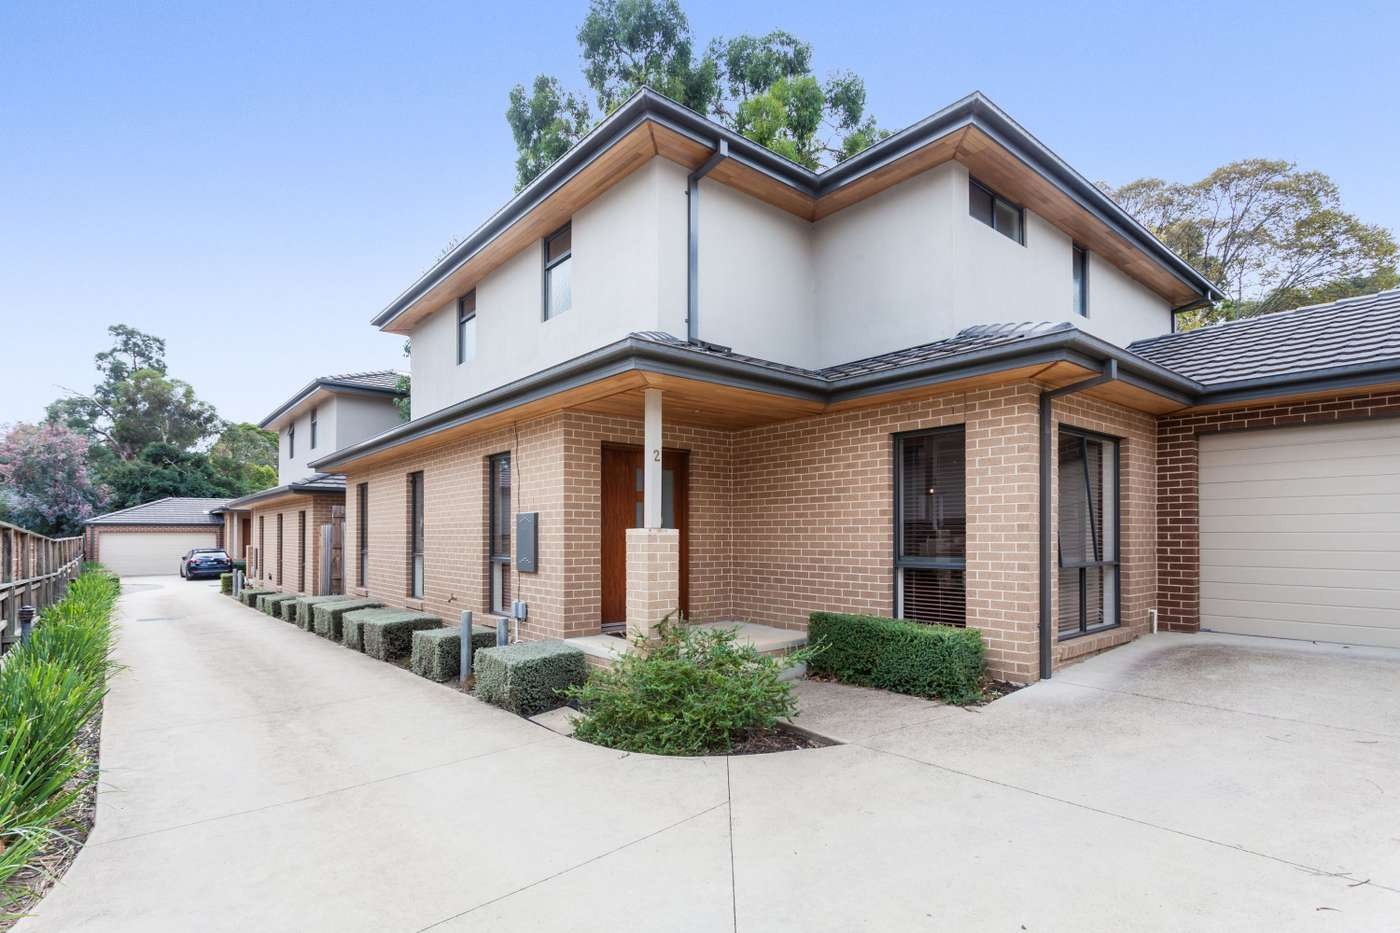 Main view of Homely house listing, 2/10 Berry Road, Bayswater North, VIC 3153